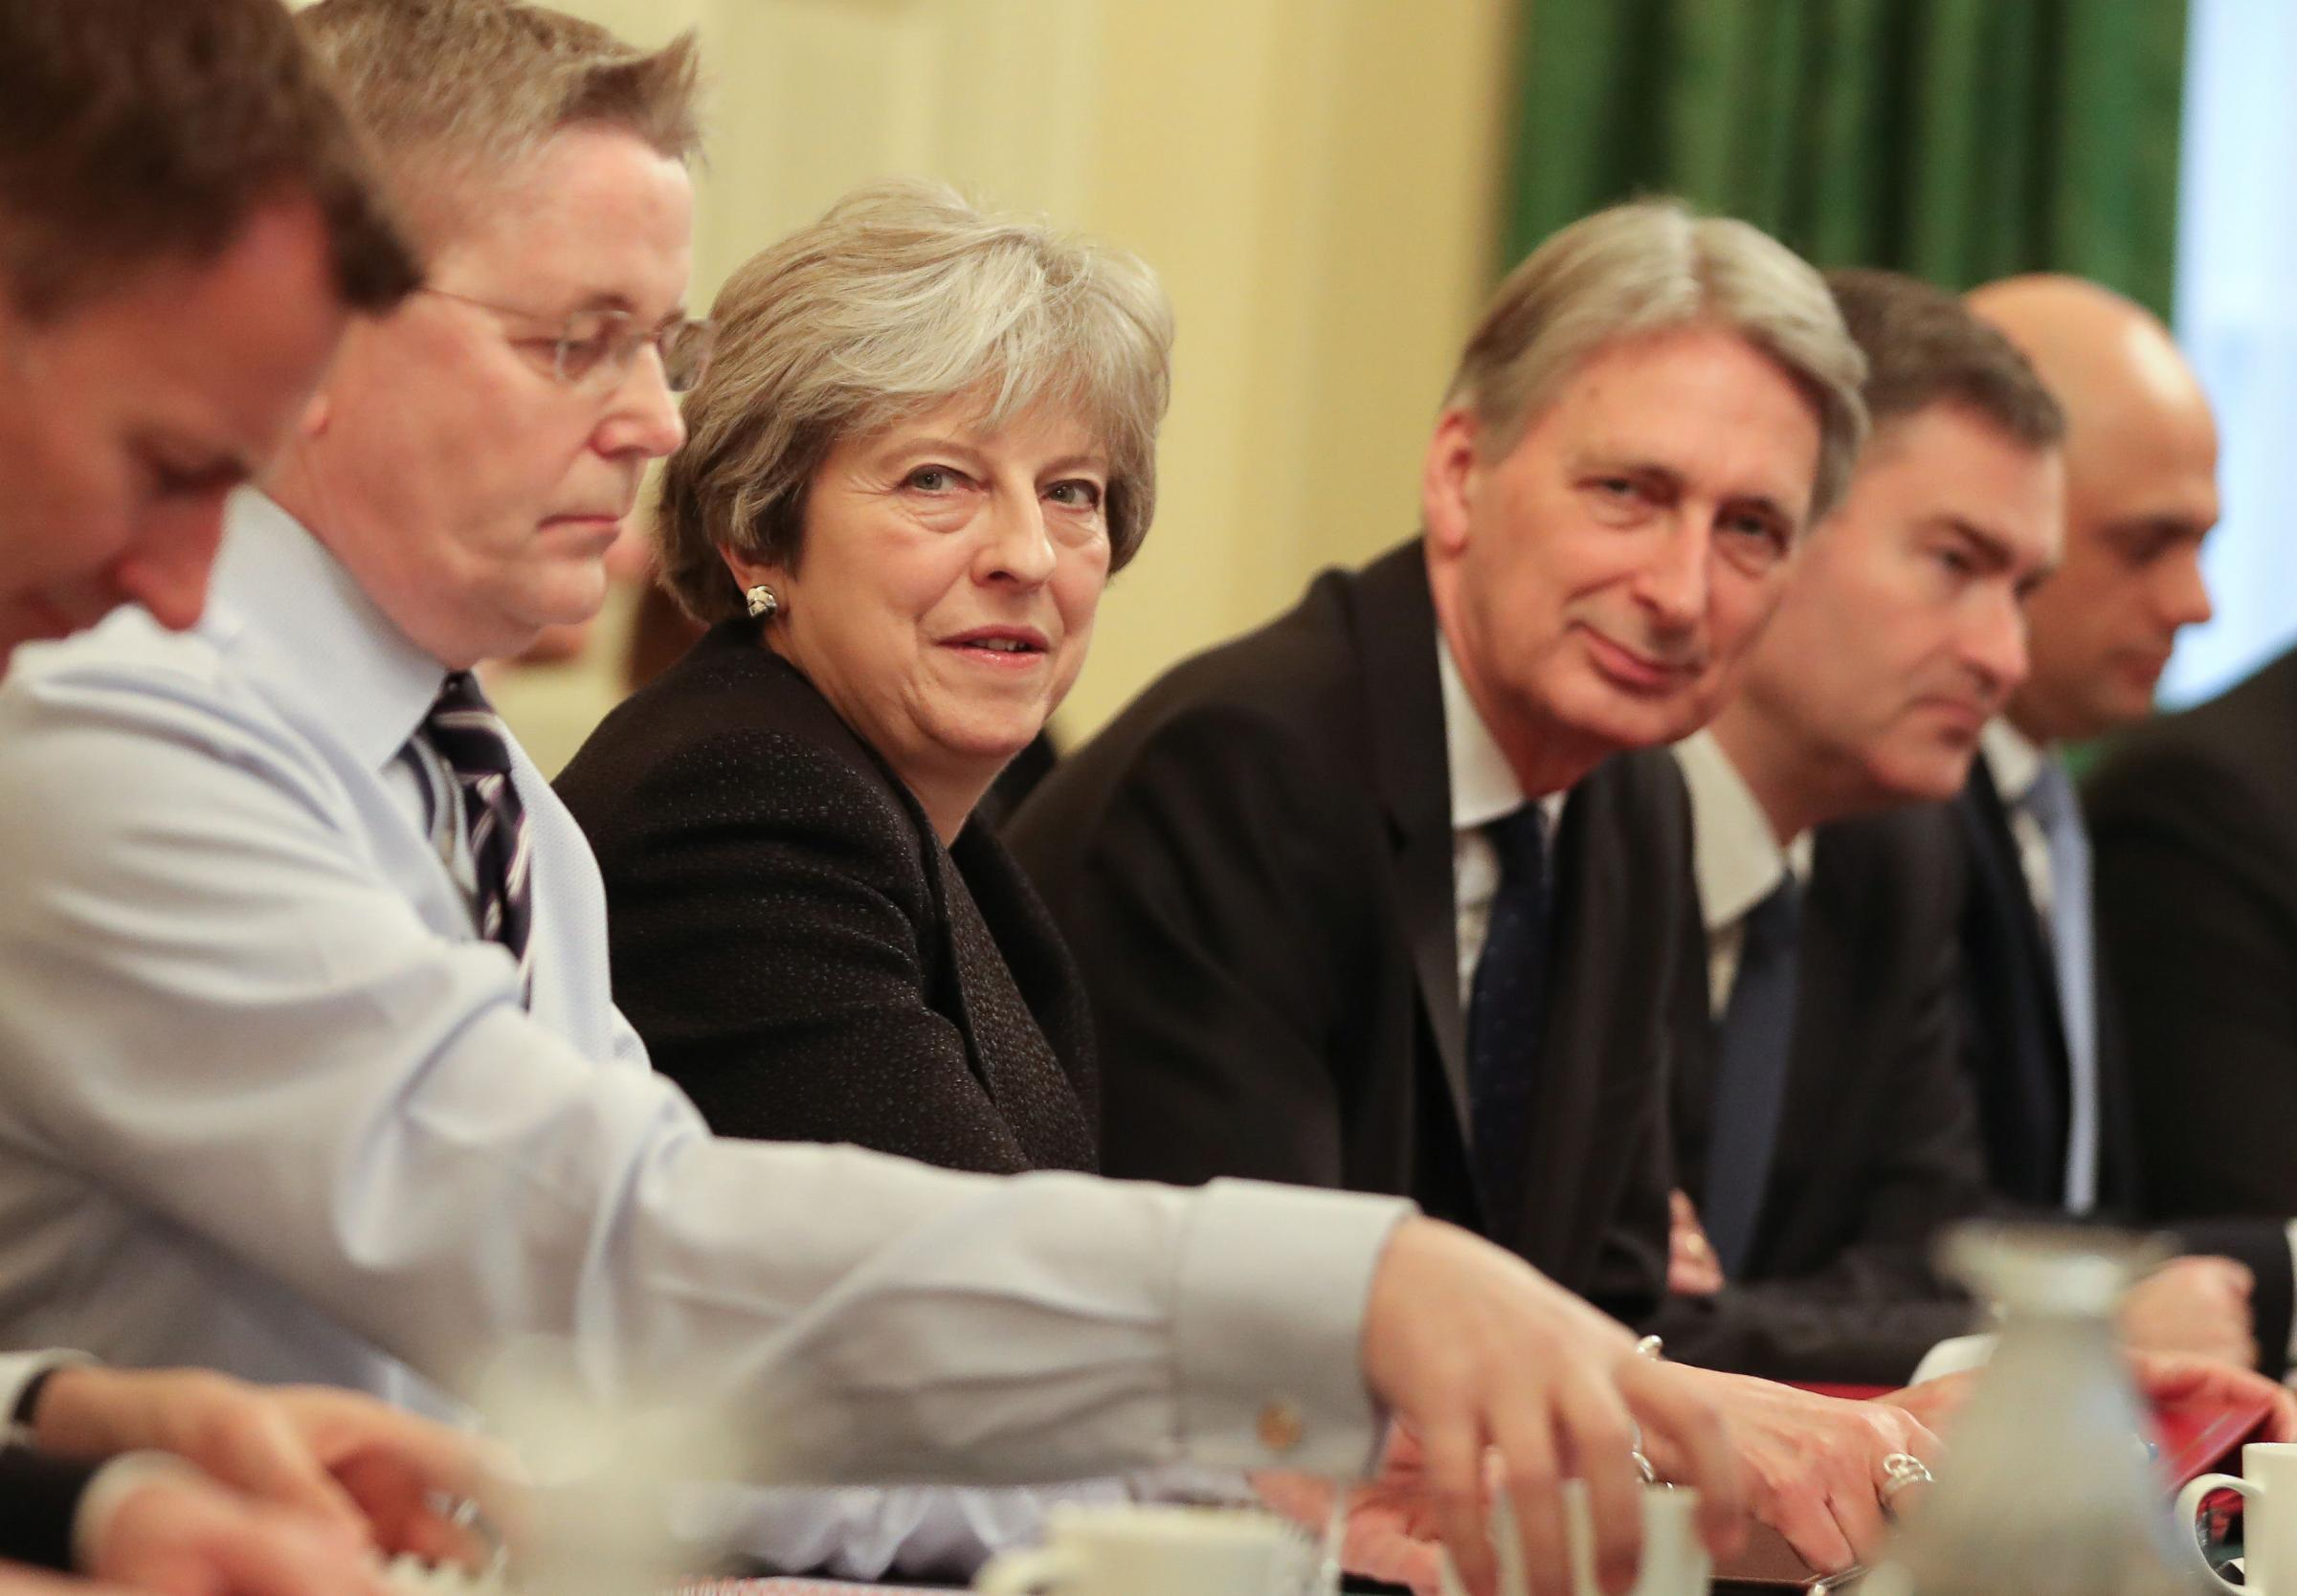 Prime Minister Theresa May leads her first cabinet meeting of the new year  at 10 Downing street in central London. PRESS ASSOCIATION Photo. Picture date: Tuesday January 9, 2018. See PA story POLITICS Reshuffle. Photo credit should read: Daniel Leal-Oliv